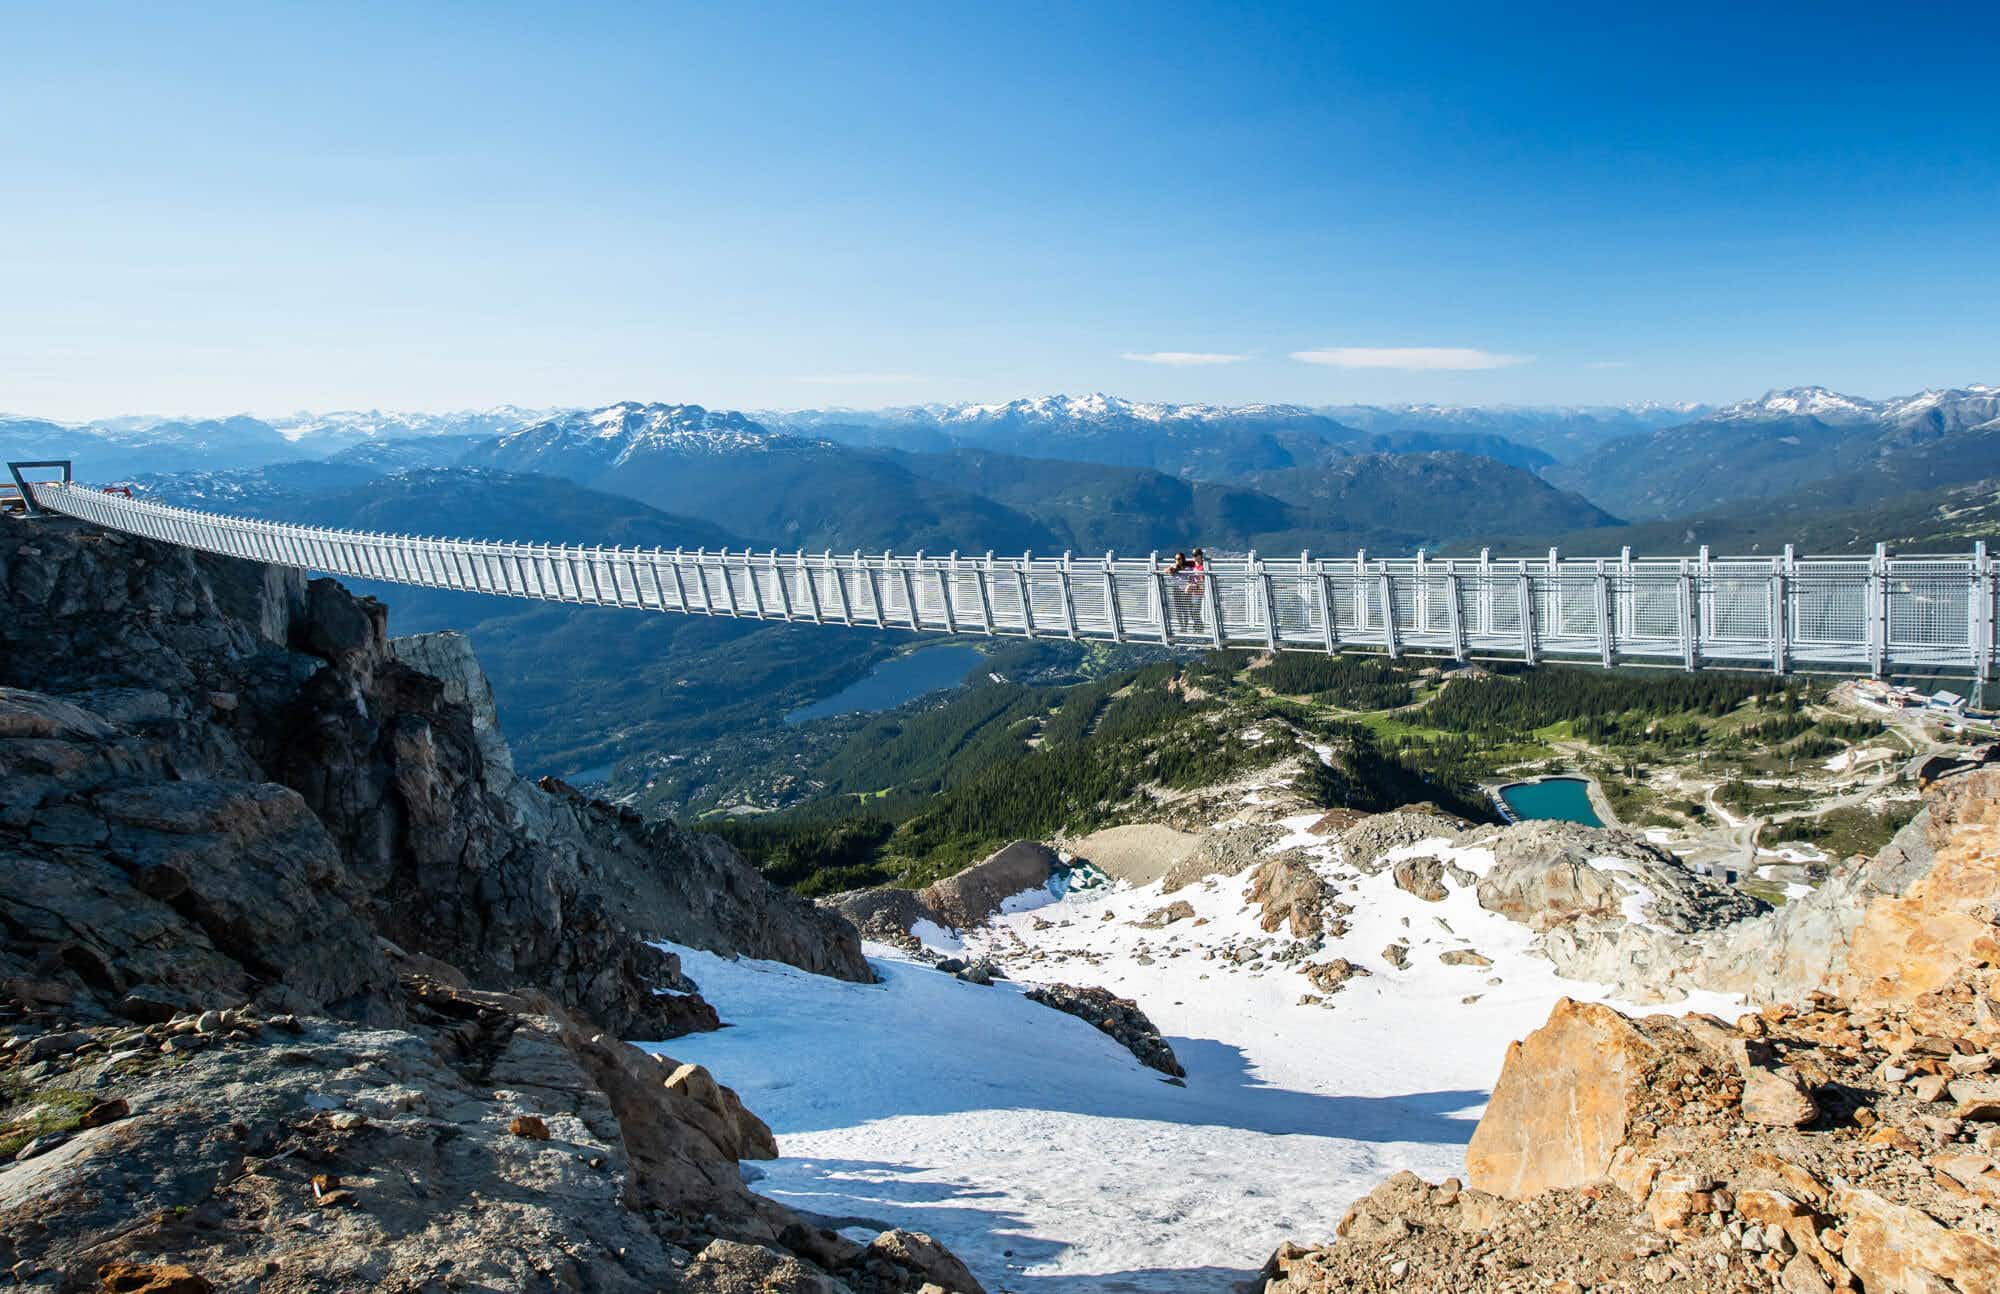 Whistler's epic views just got easier to reach with this new suspension bridge